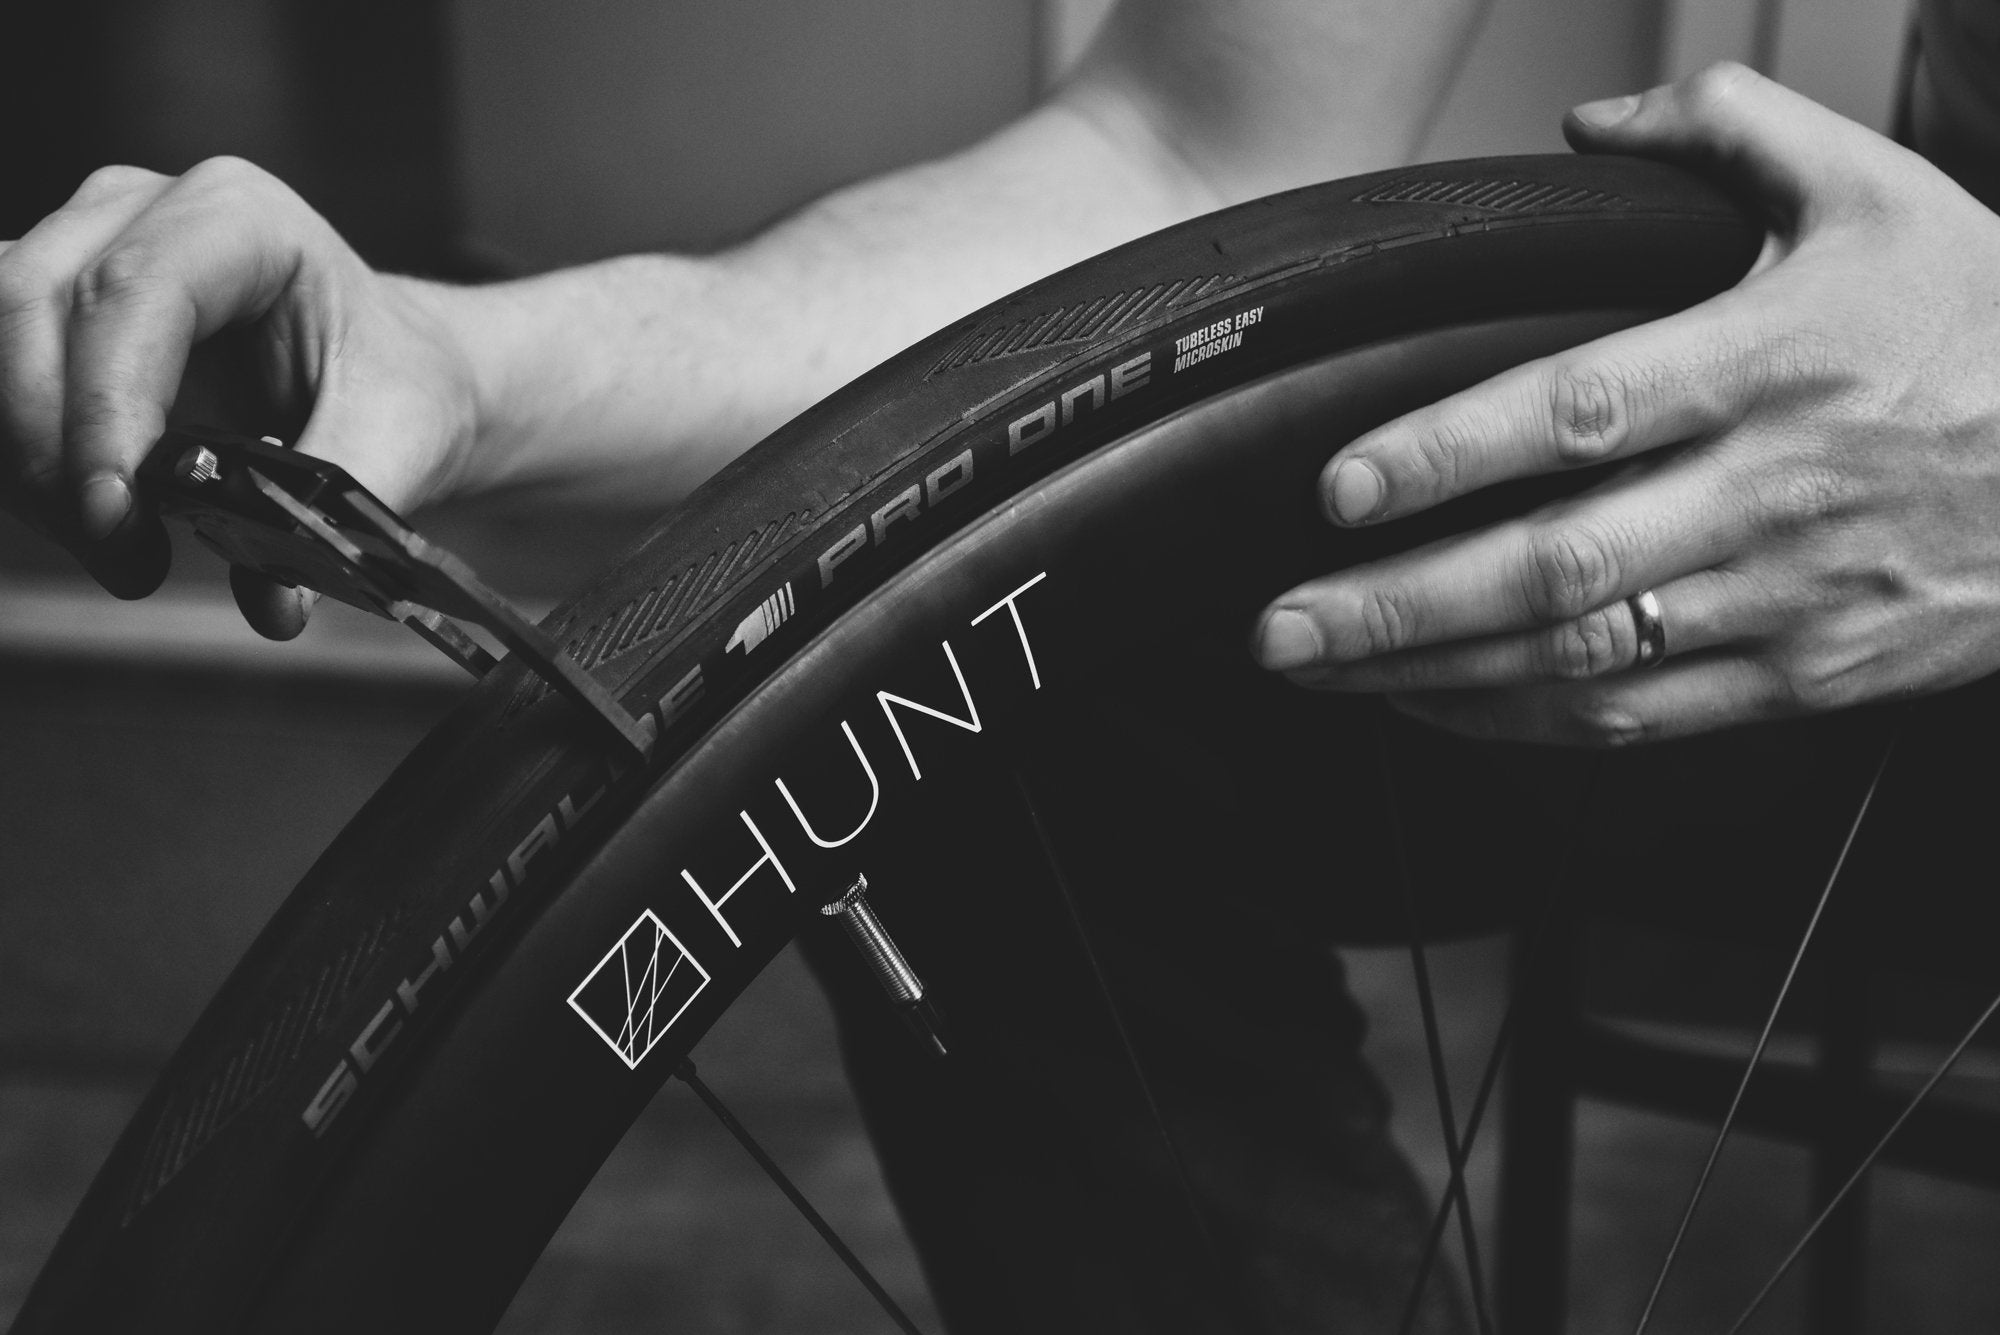 <h1>Tyre Compatibility</h1><i>Optimised aerodynamically for a Schwalbe Pro One 28c, but compatible with any tubeless or clincher tyre from 23 up to 45c.</i>